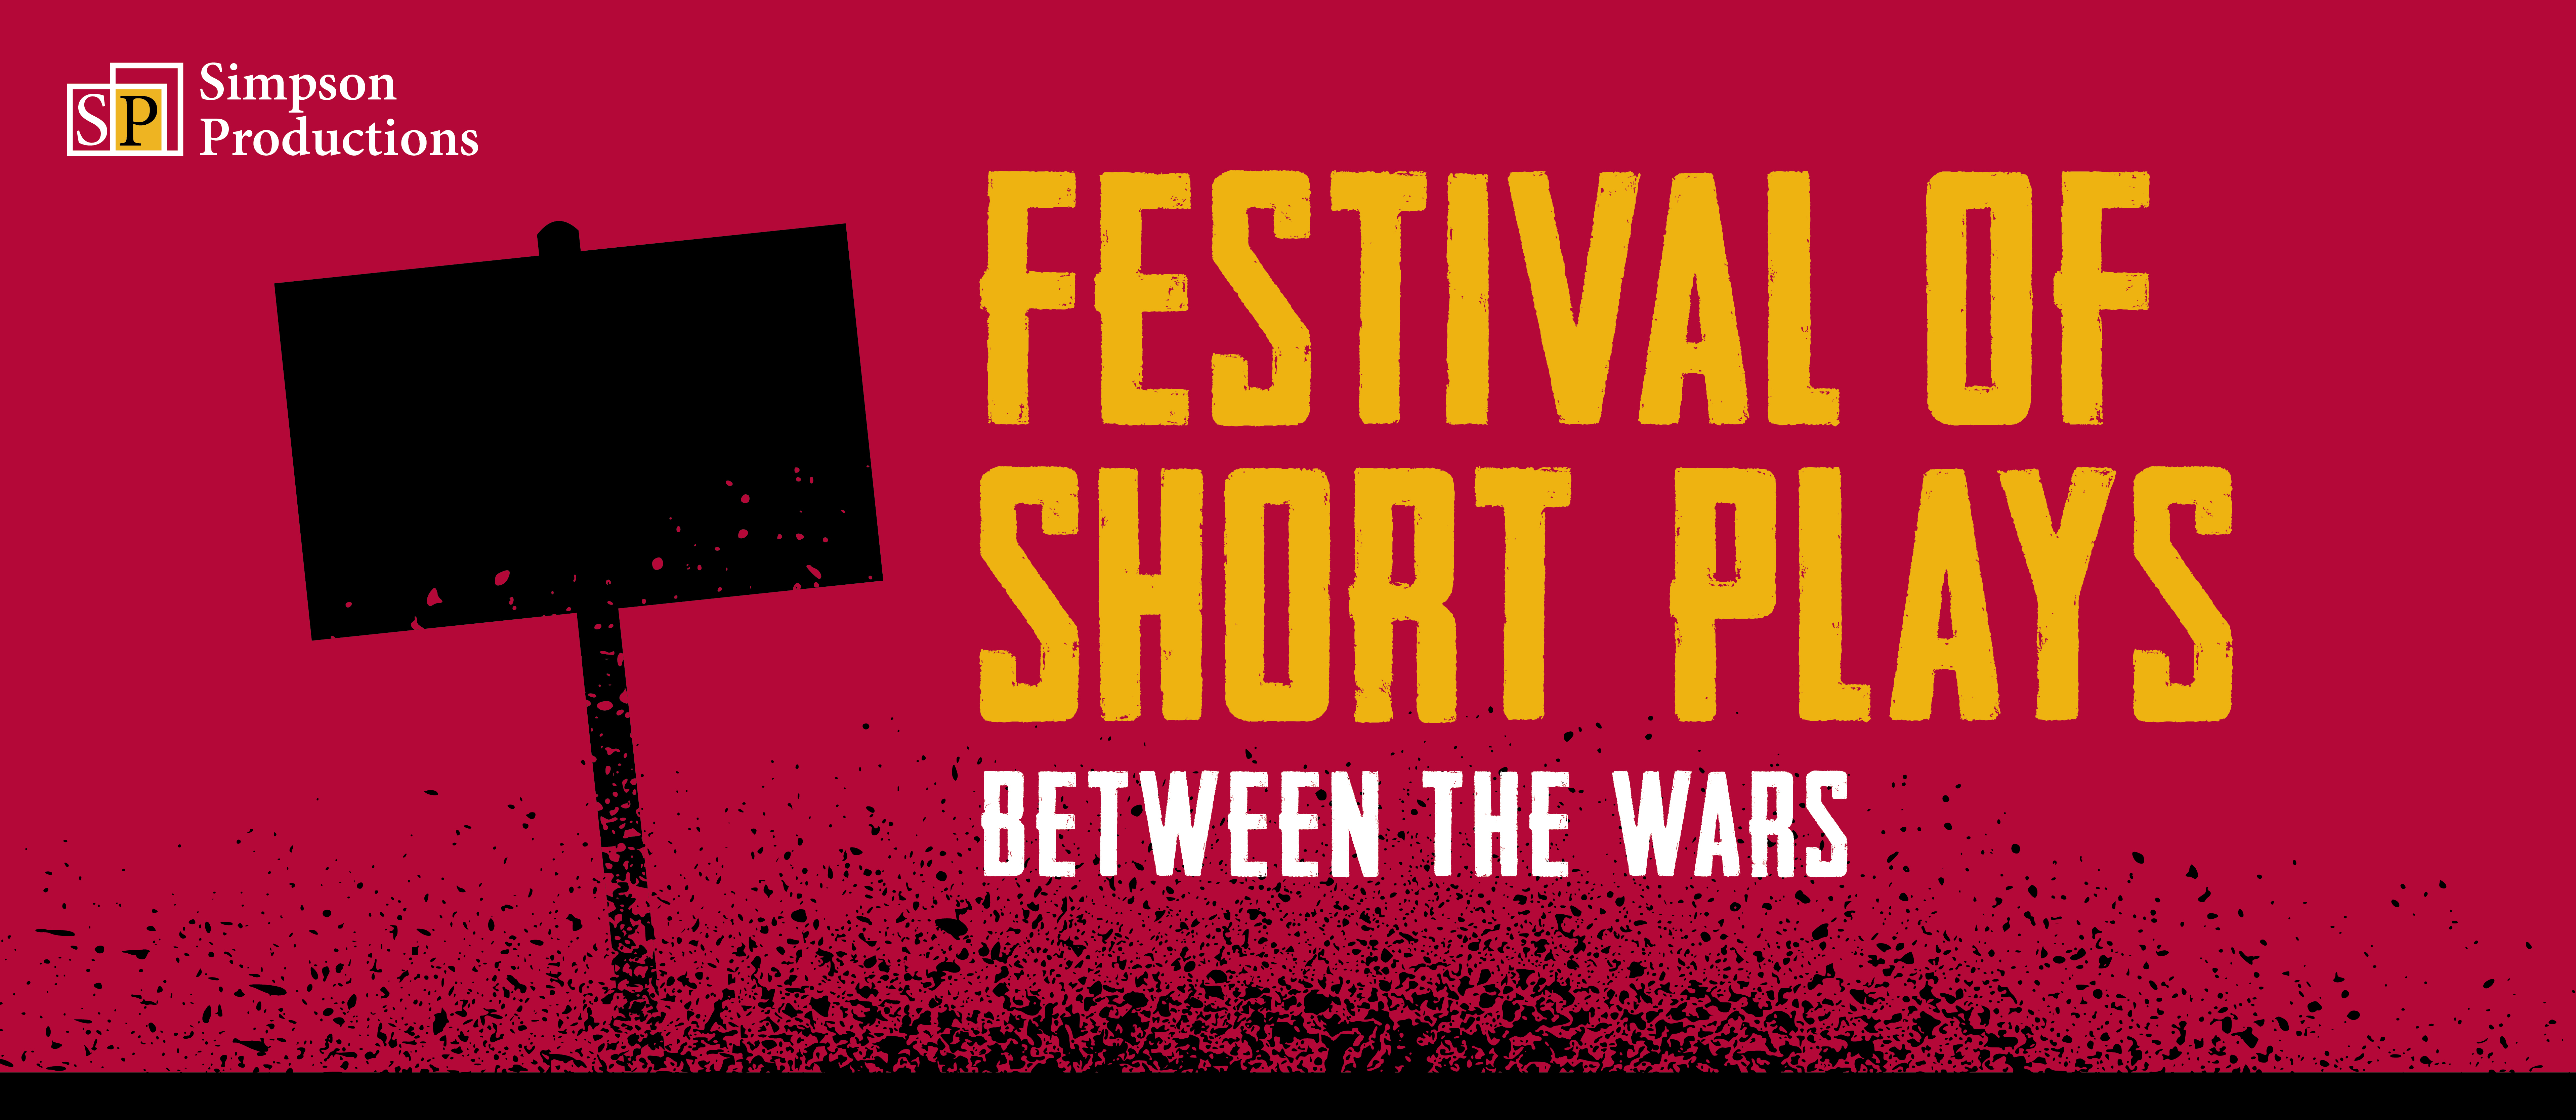 Simpson Productions presents annual Festival of Short Plays at Veteran's Memorial Park